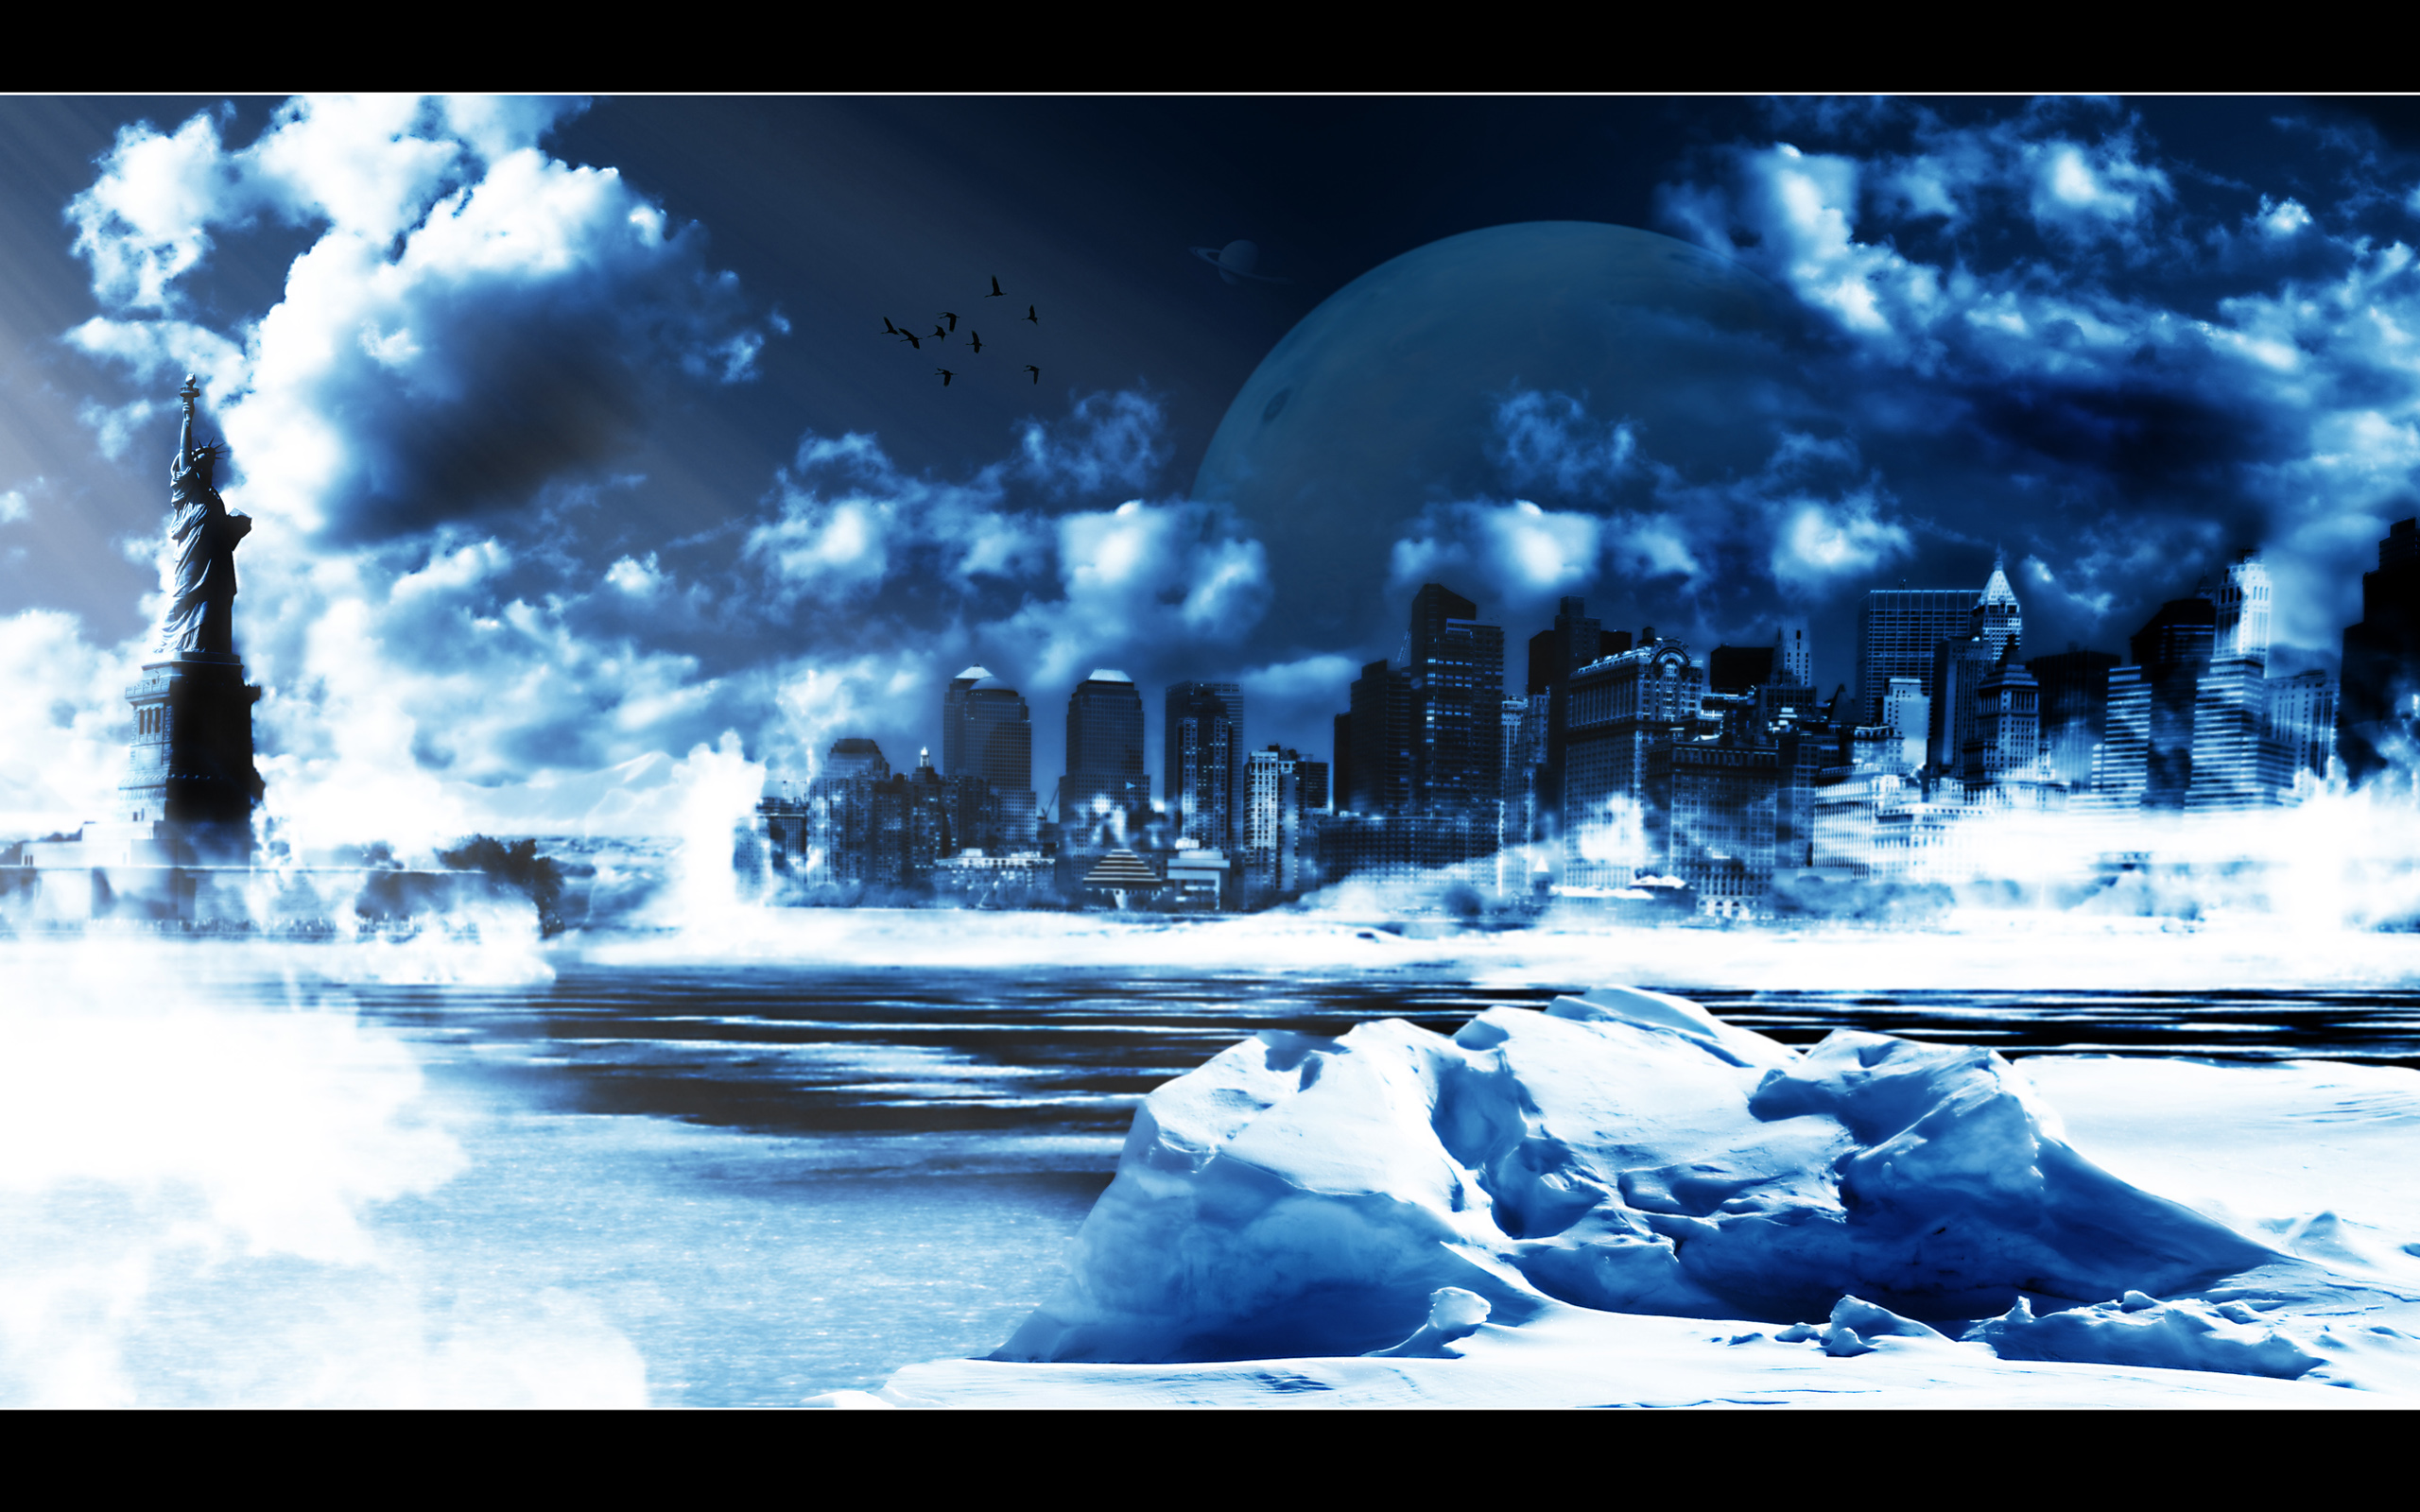 Fond d 39 ecran new york sous la neige wallpaper for Fond ecran neige